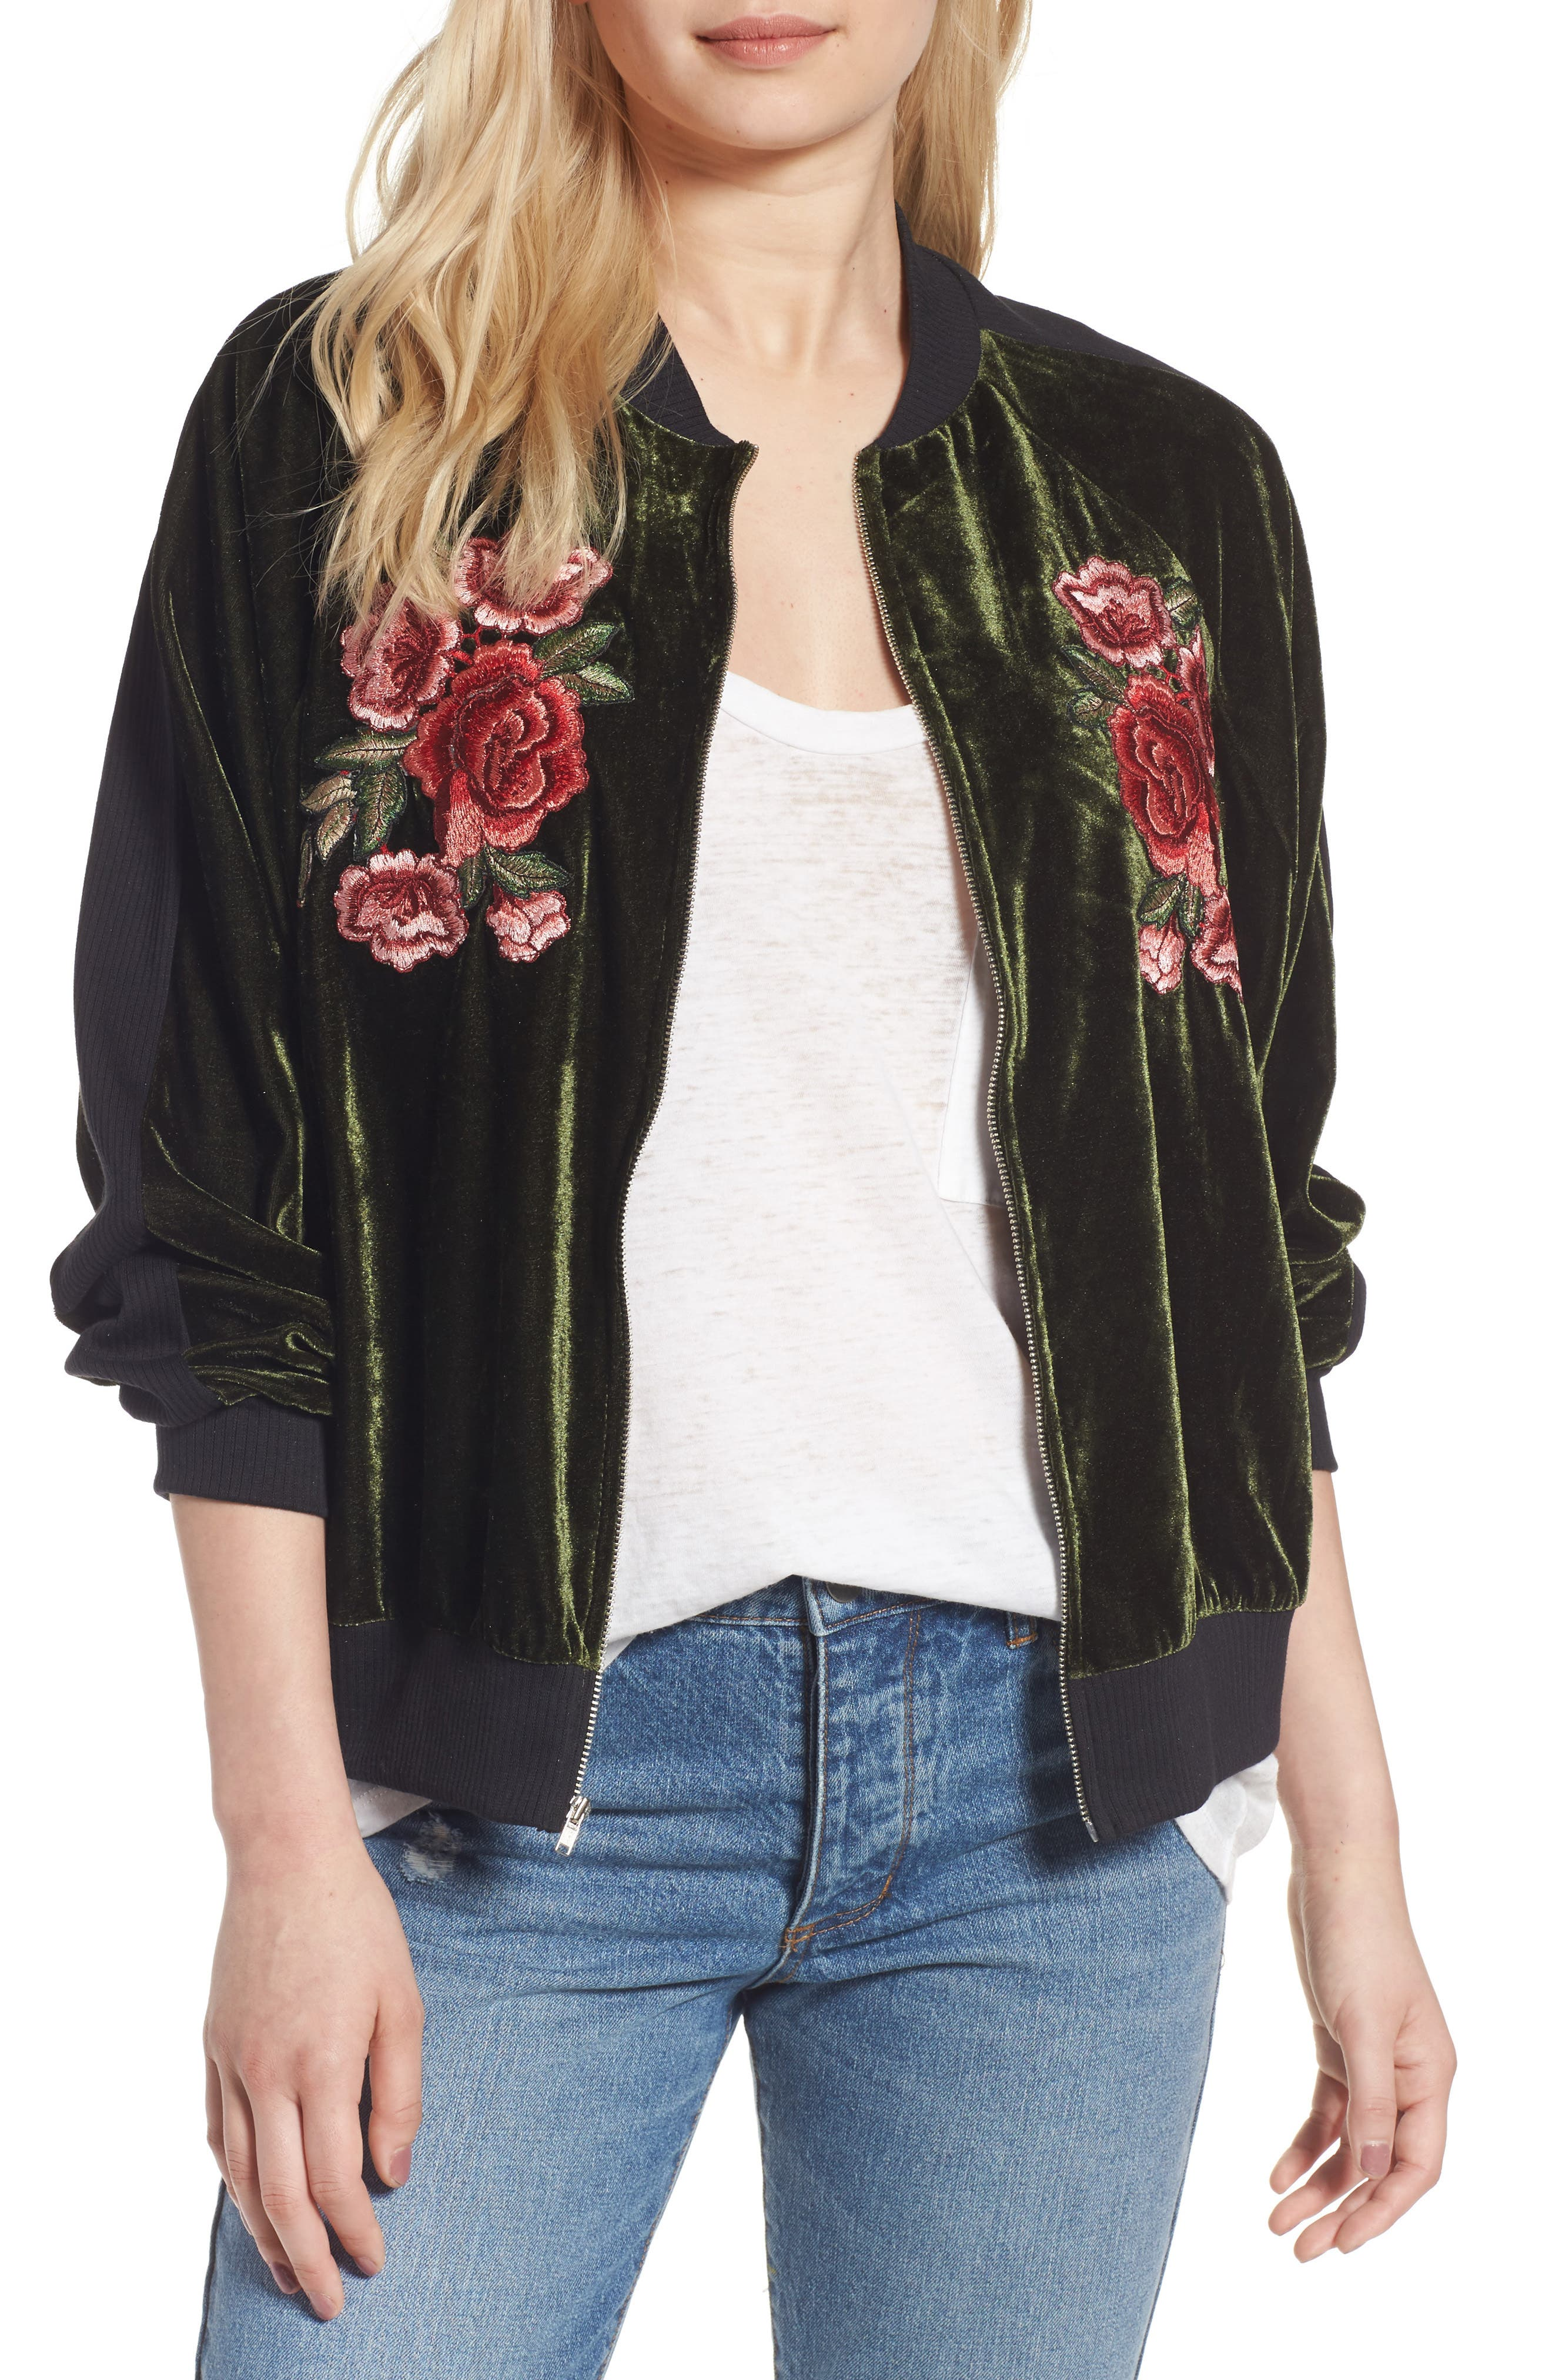 Alternate Image 1 Selected - BP. Floral Embroidered Bomber